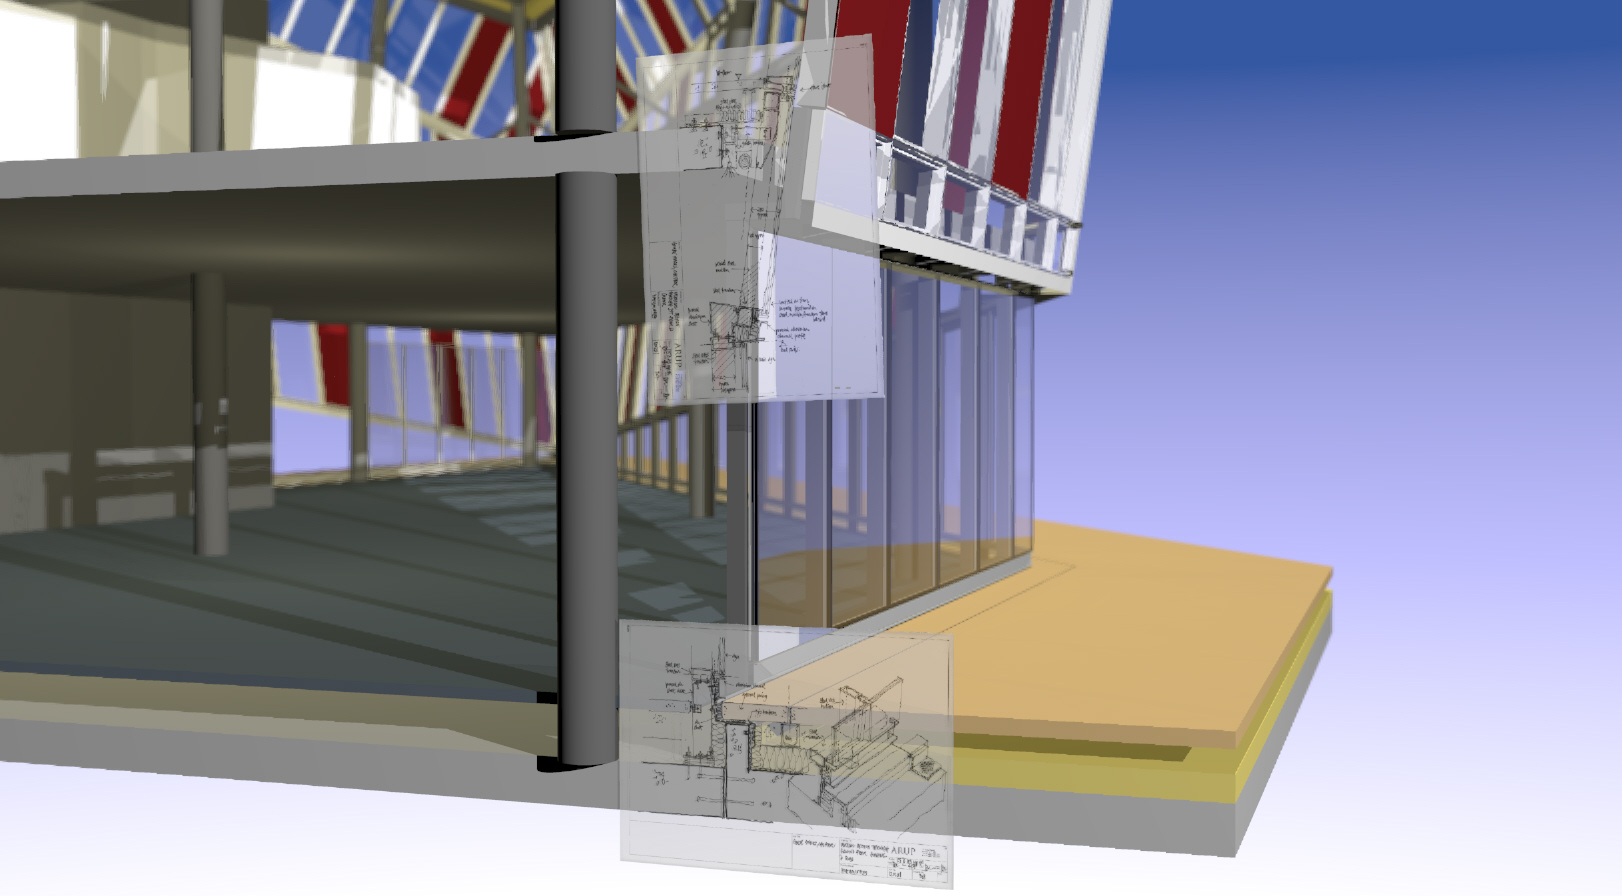 architectural design and technology Gcse architecture design considerations learning resources for adults, children, parents and teachers.